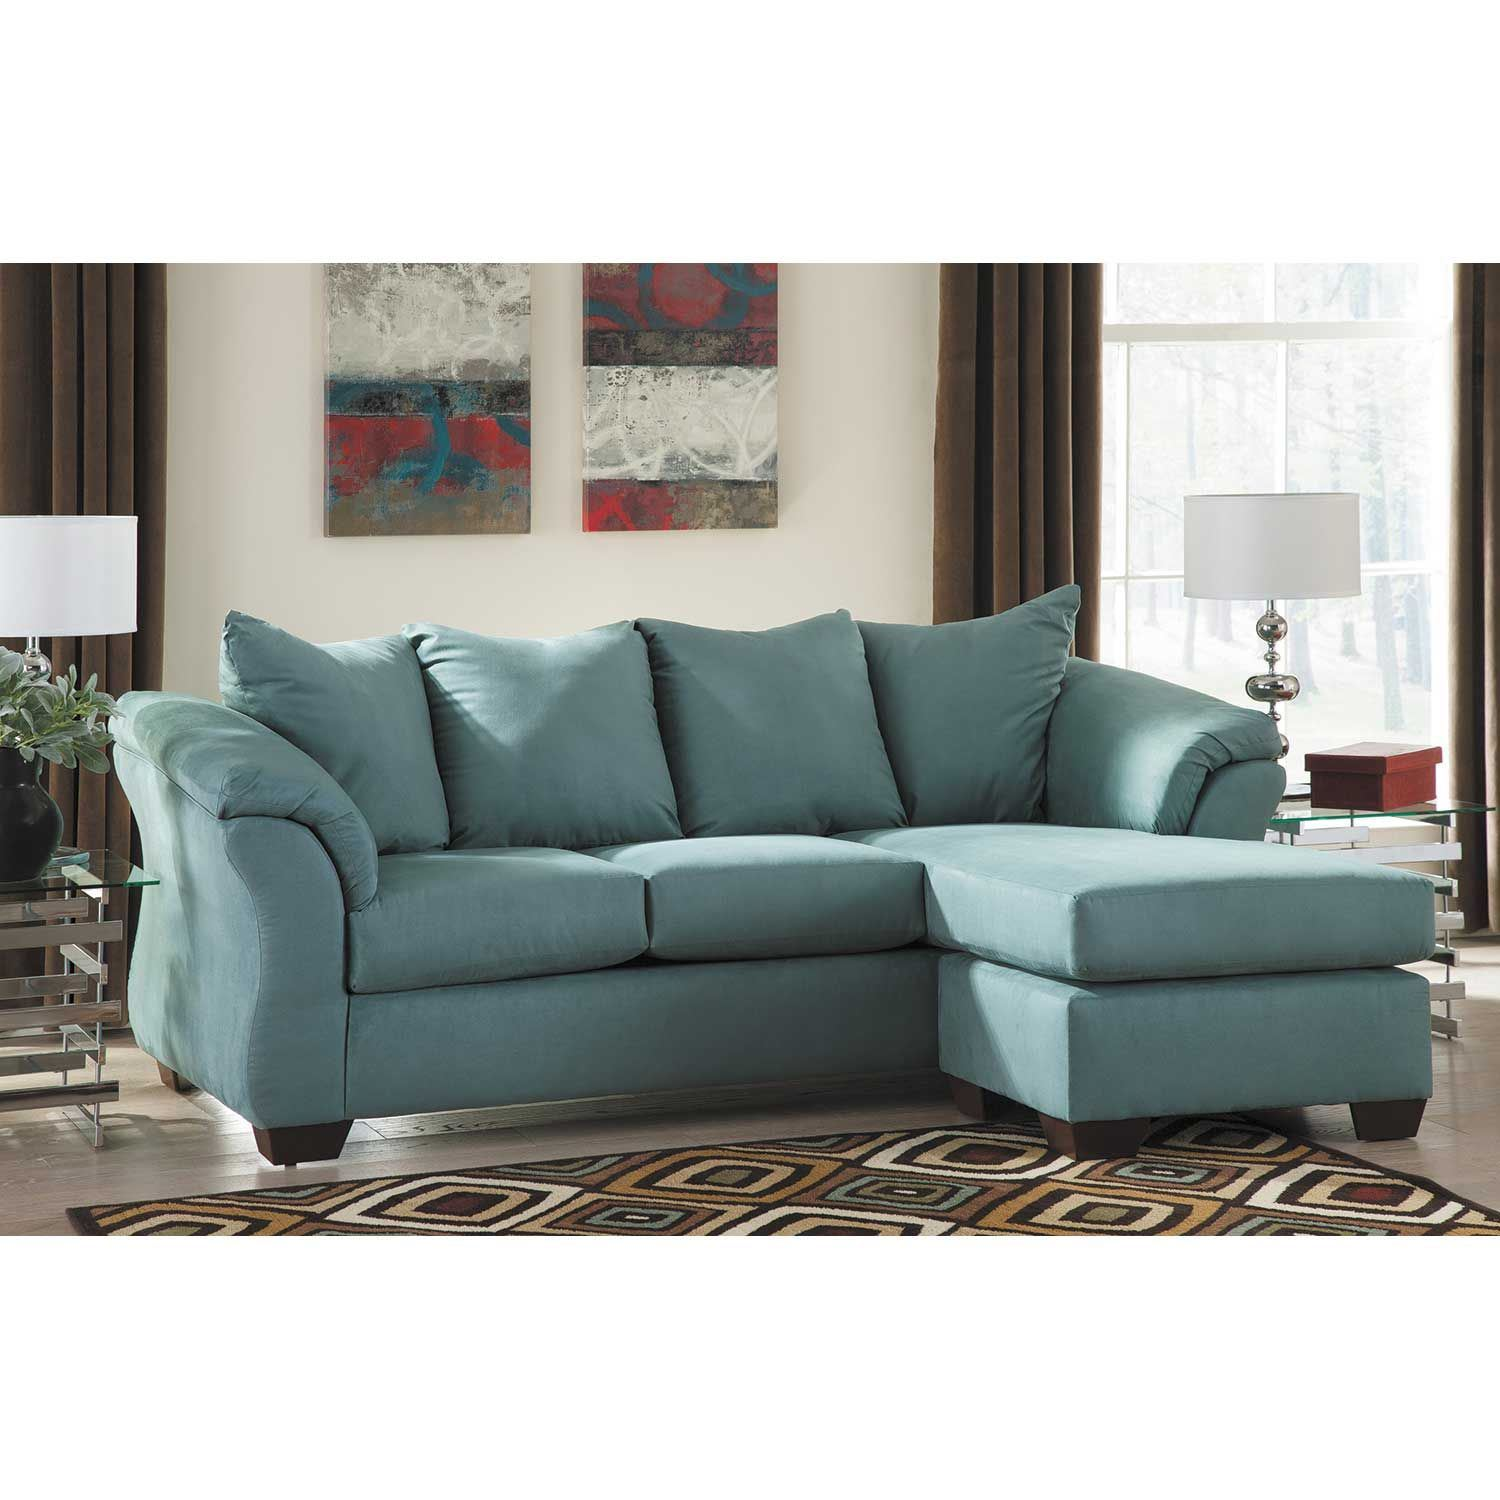 Blue reversible sofa chaise v5 750sc ashley furniture afw for How to rent furniture